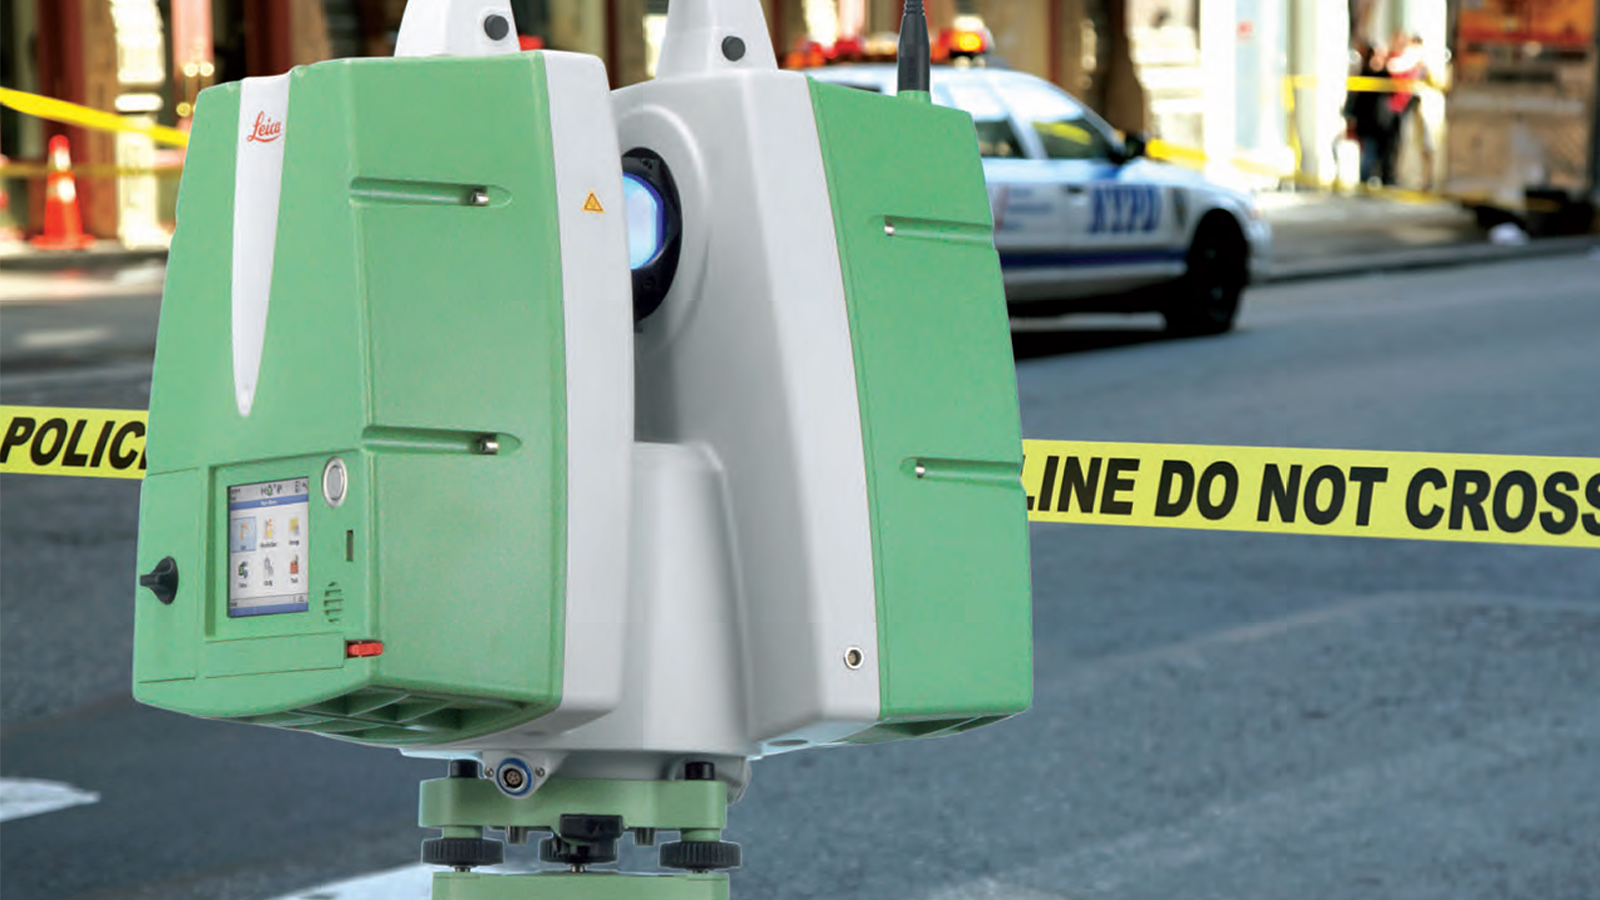 Leica Forensic & Public Safety